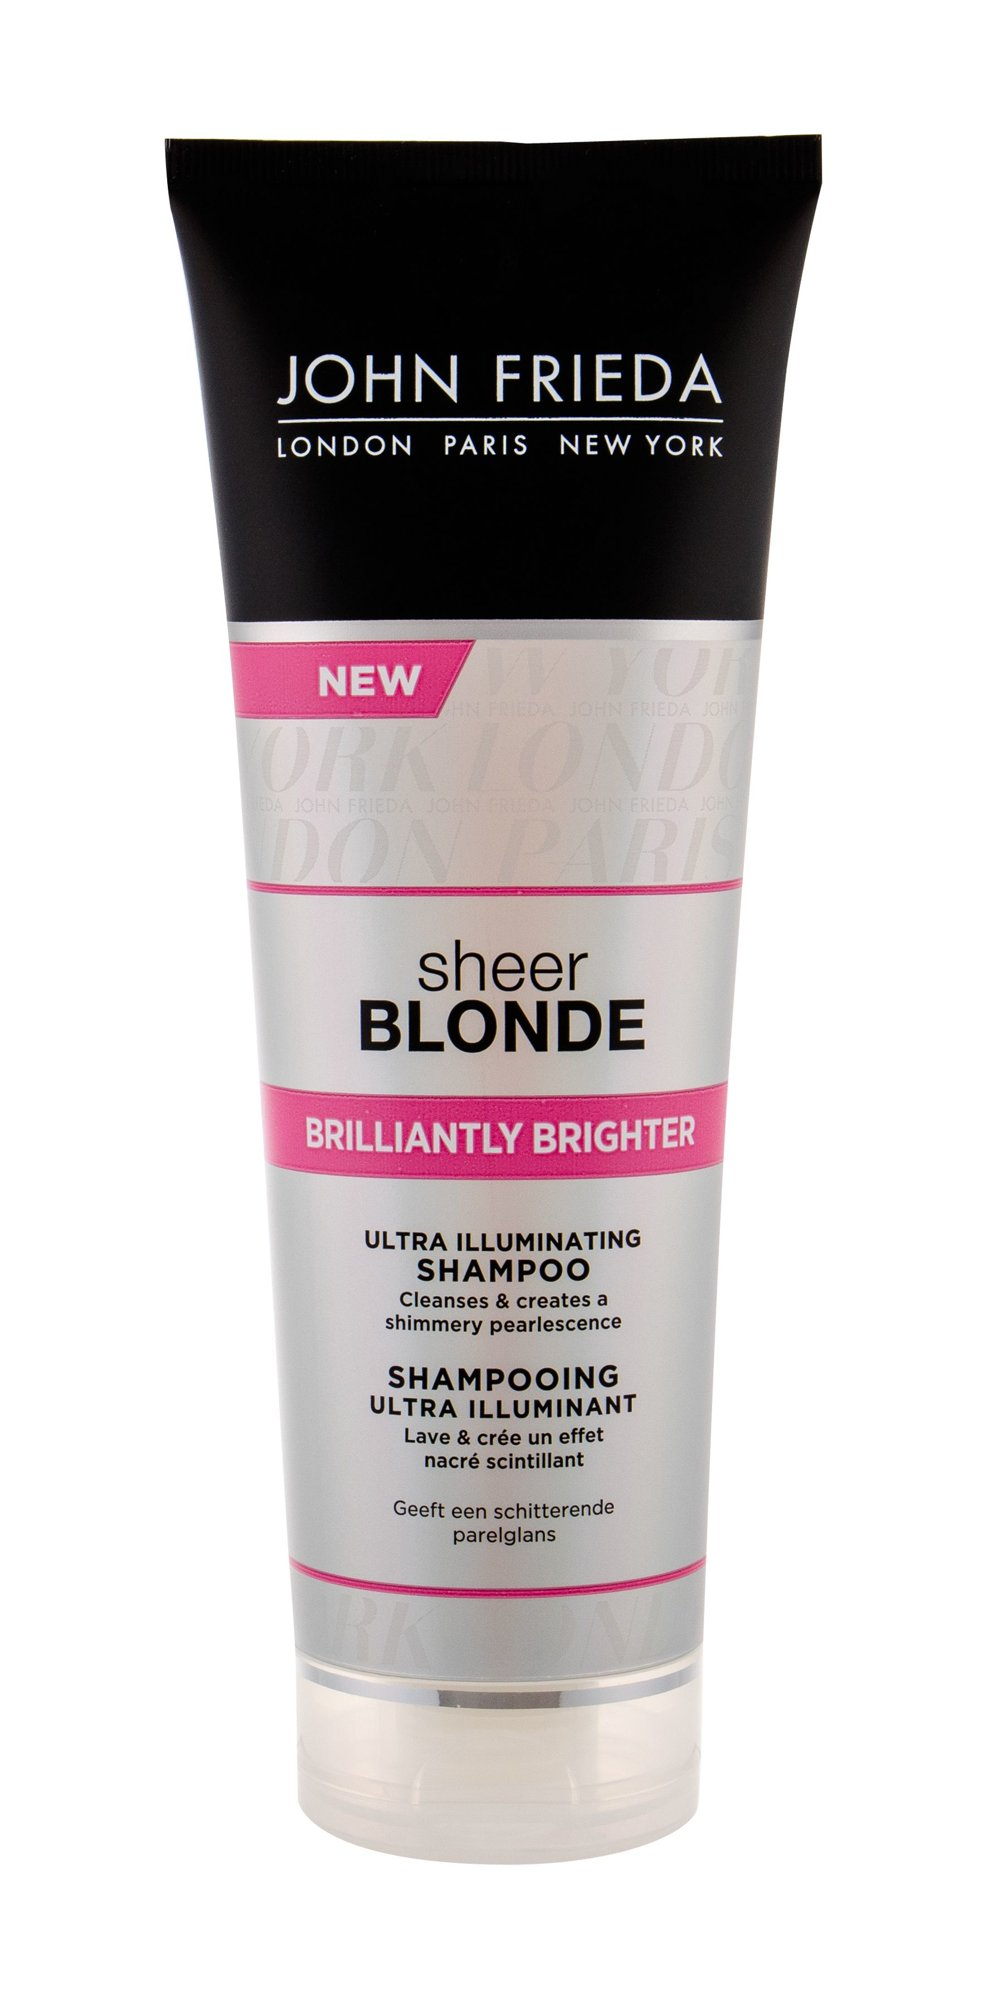 John Frieda Sheer Blonde Shampoo 250ml  Brilliantly Brighter